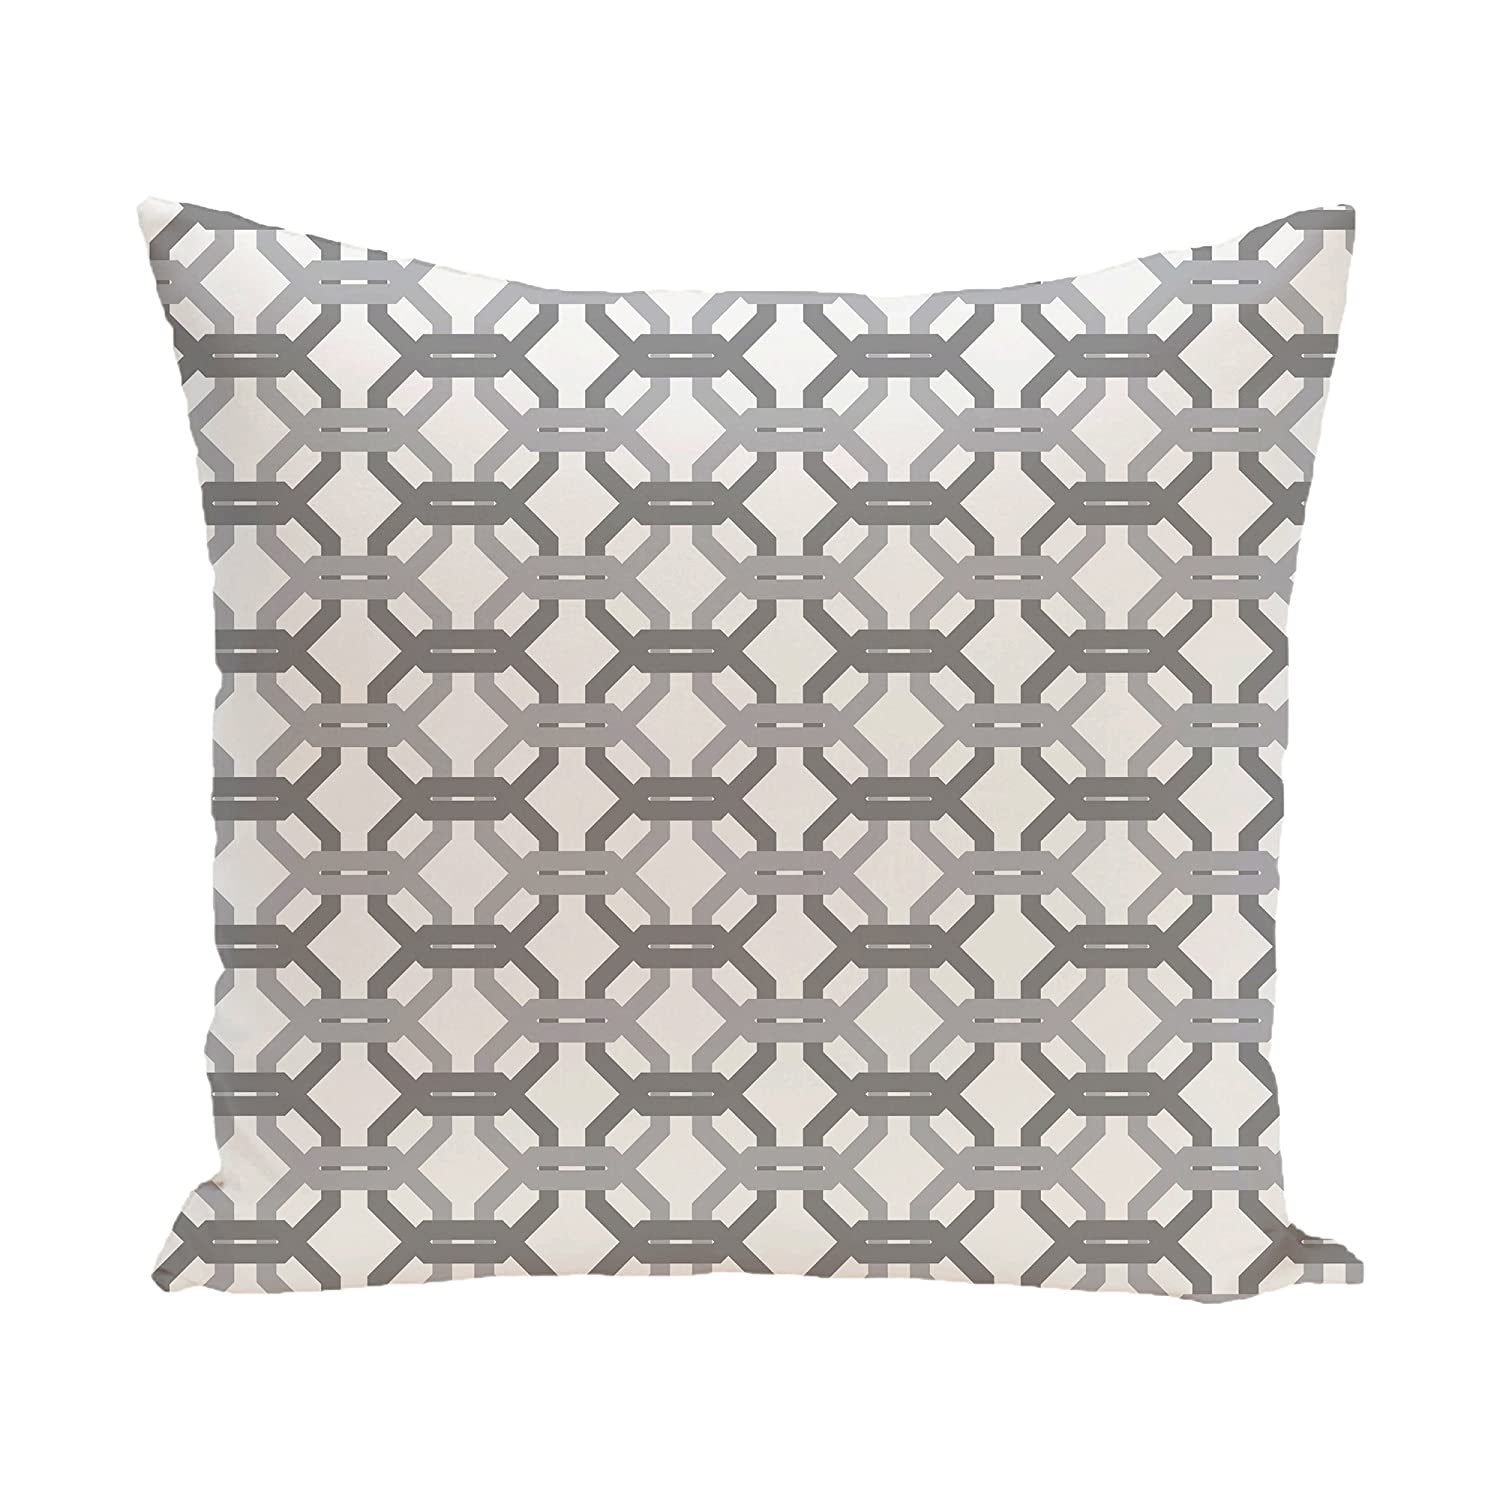 18-Inch Length E by design Were All Connected Geometric Print Pillow Ocean